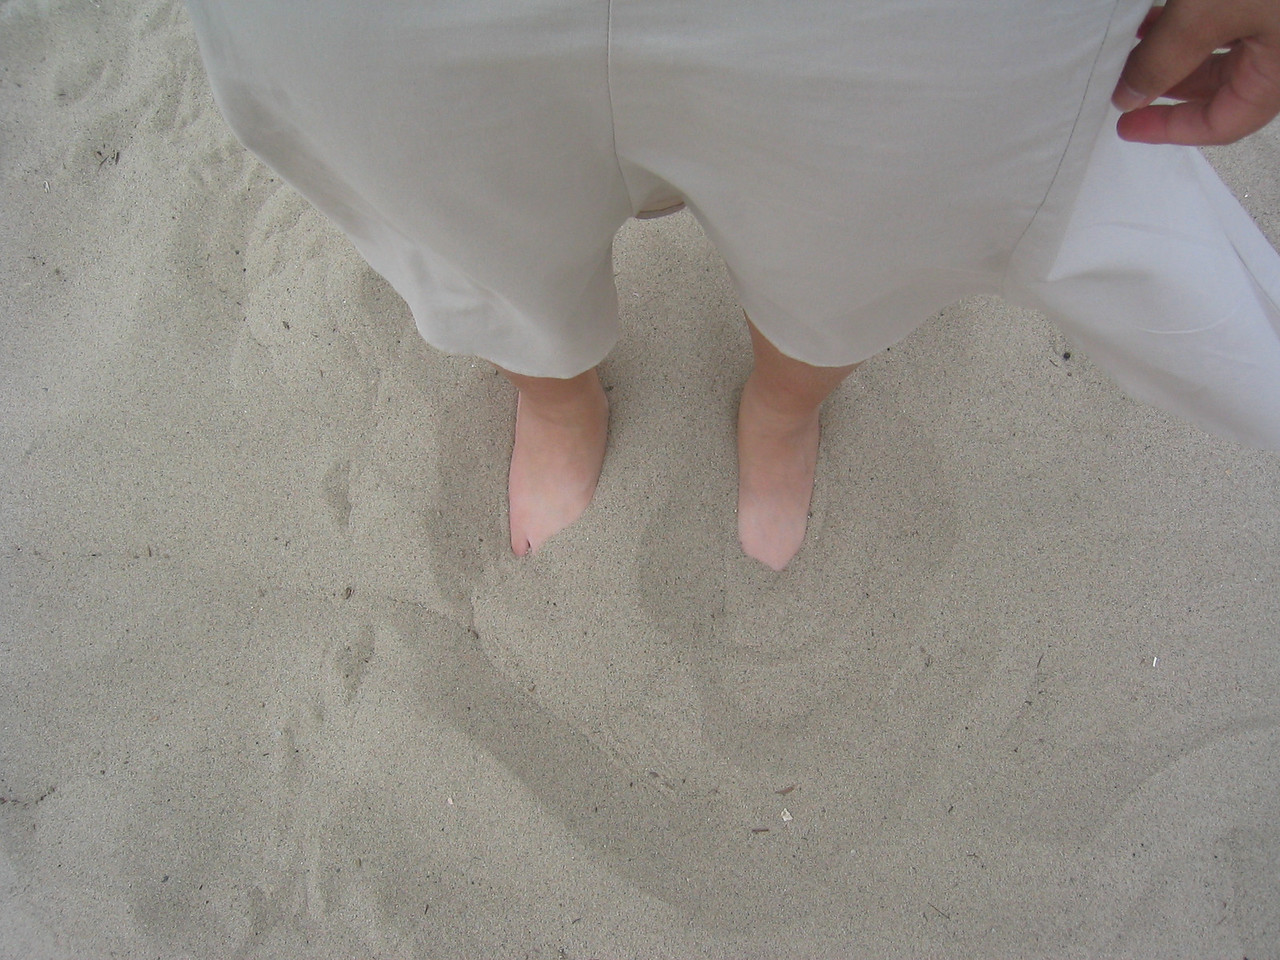 Proof that Muoy Muoy touched a beach @ Santa Monica Beach, Monday 6 2 2003